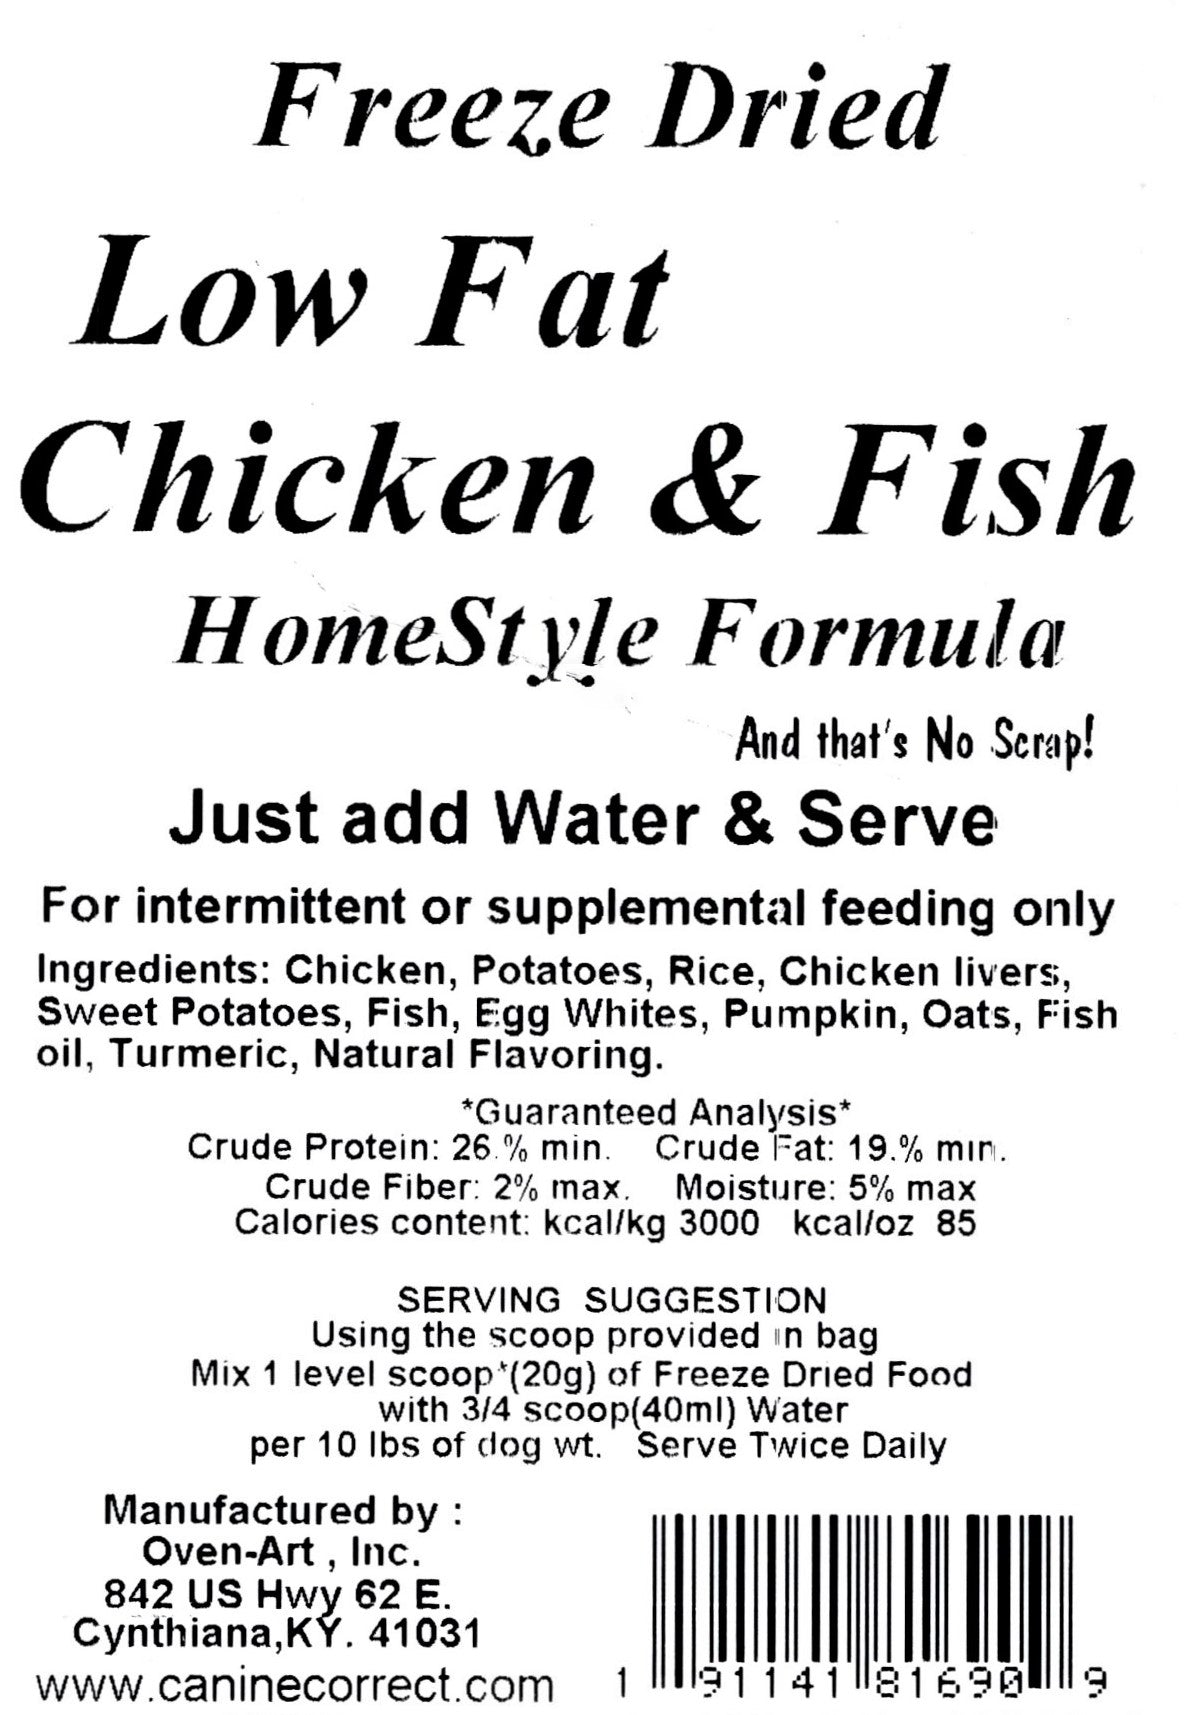 Canine Correct Low Fat Chicken & Fish Home-Style Formula